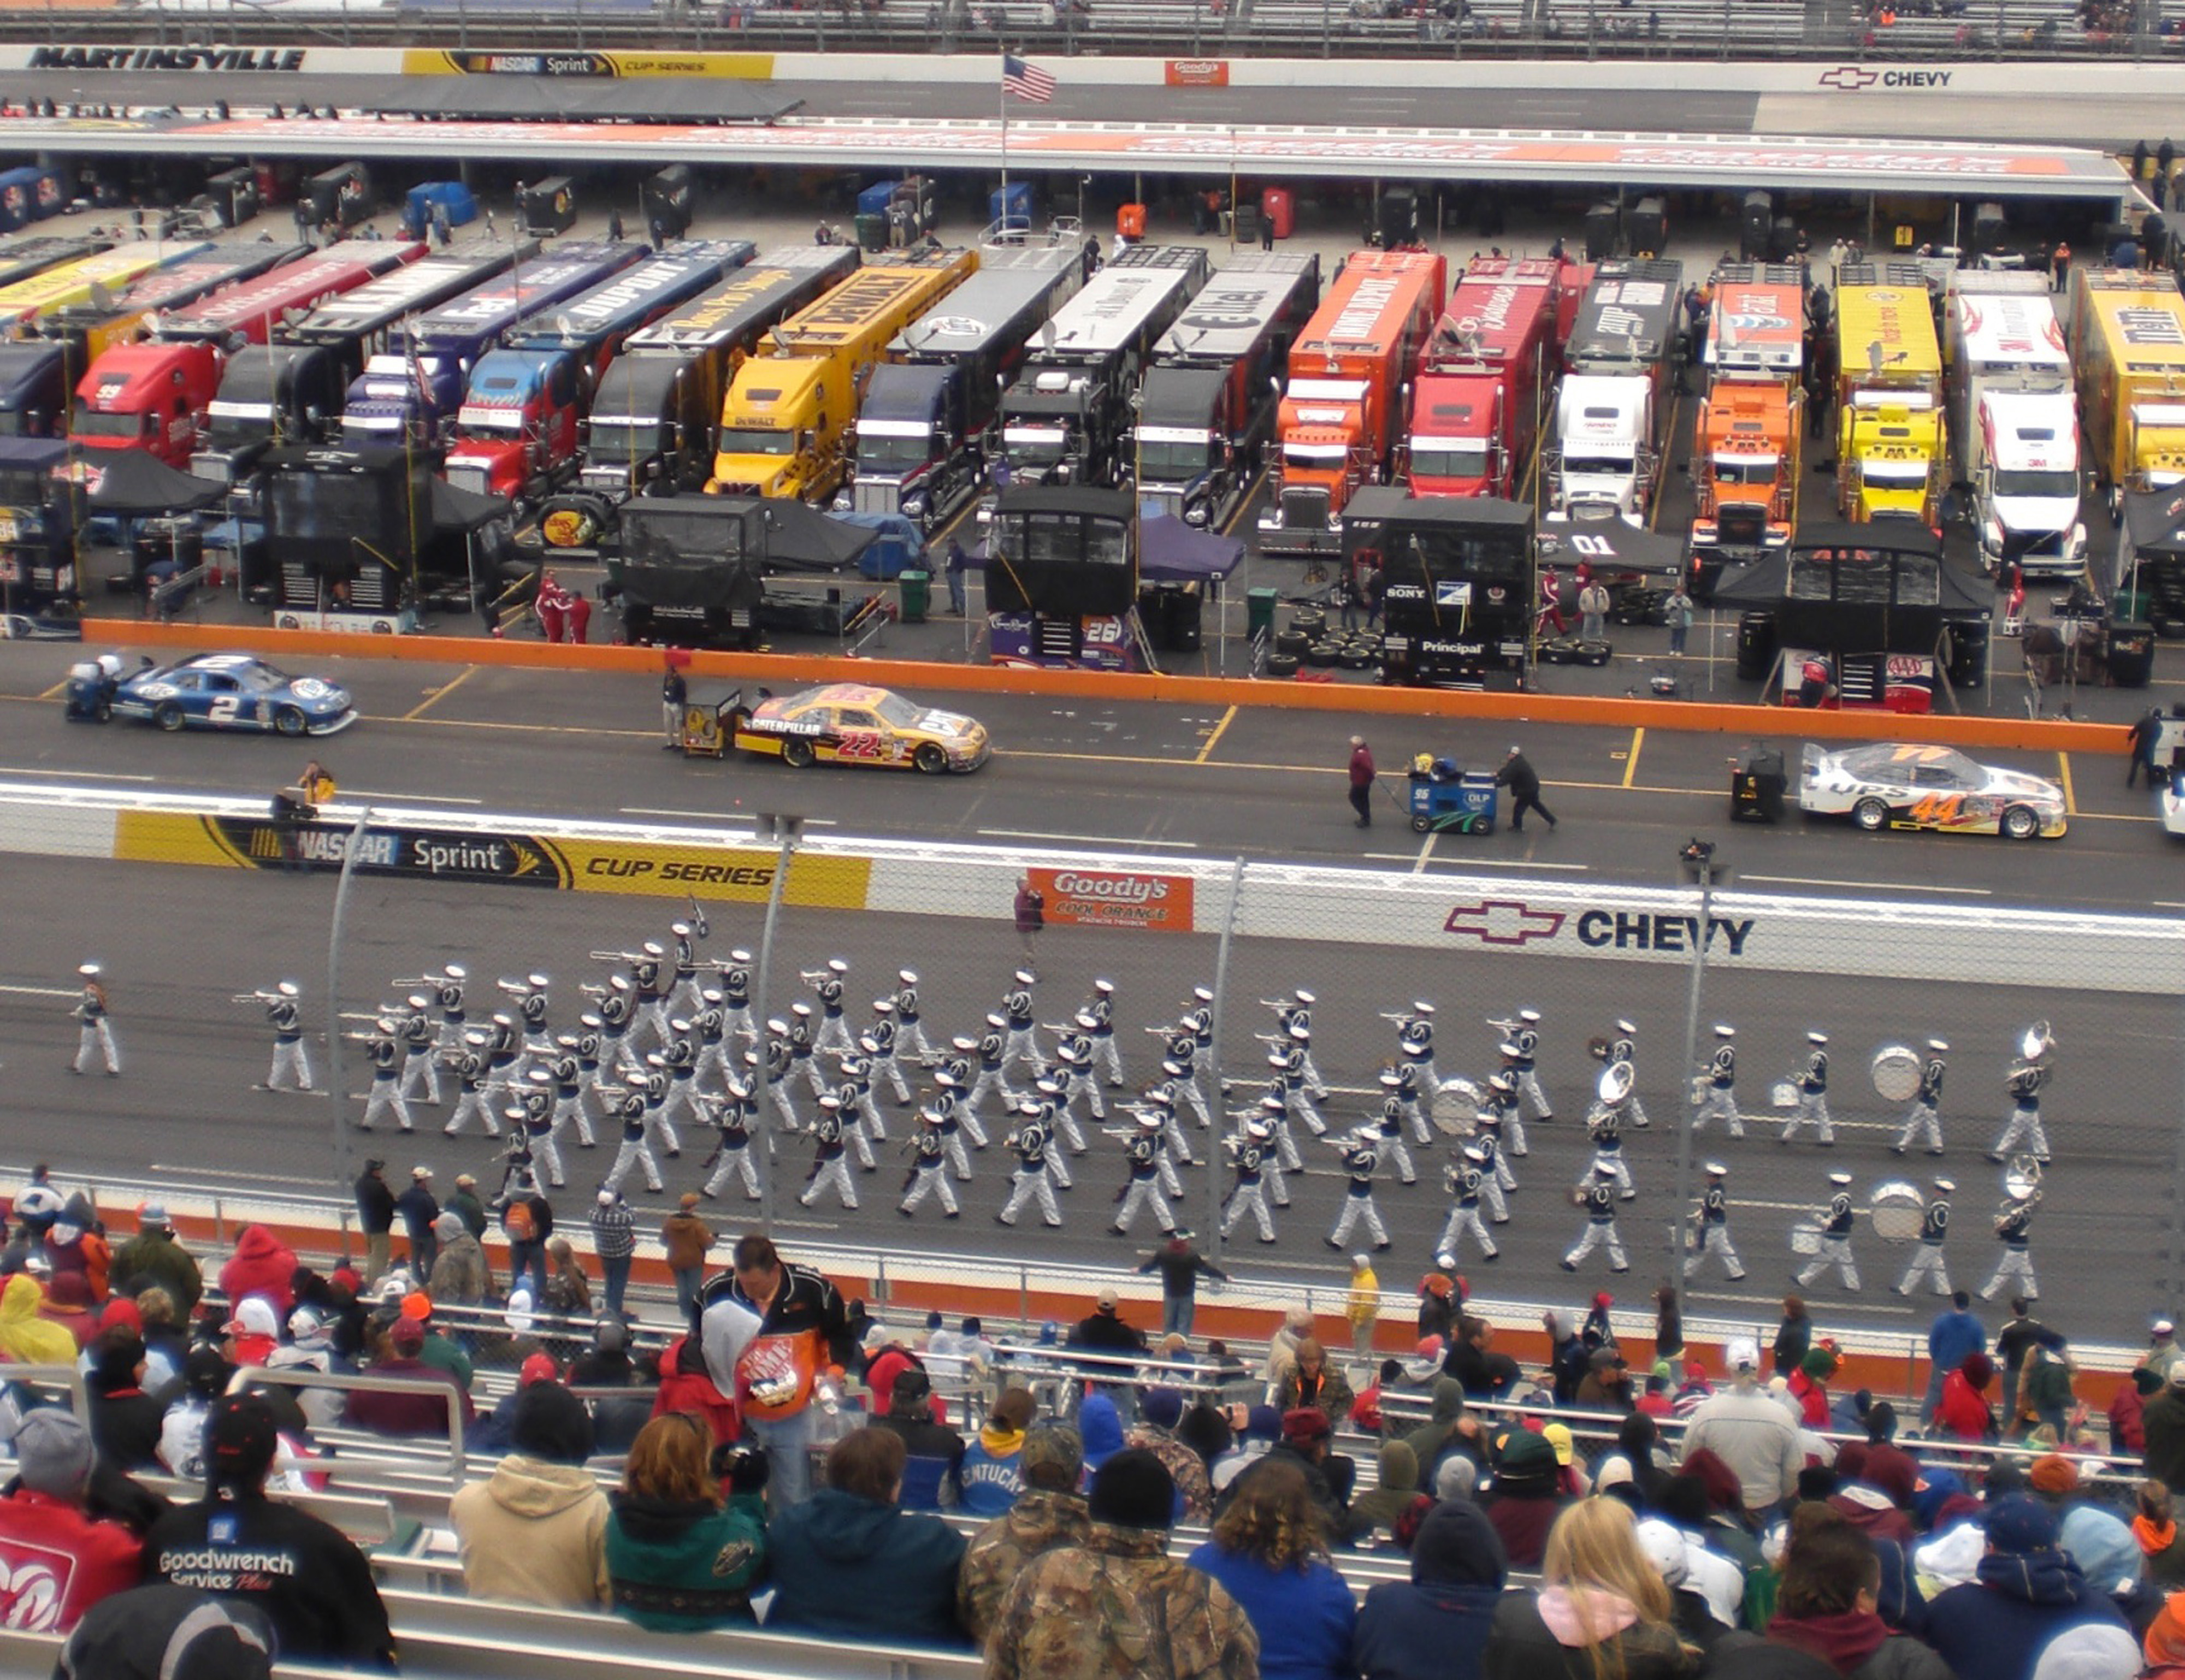 The Virginia Tech Corps of Cadets Regimental Band, the Highty-Tighties, is seen performing at Martinsville Speedway